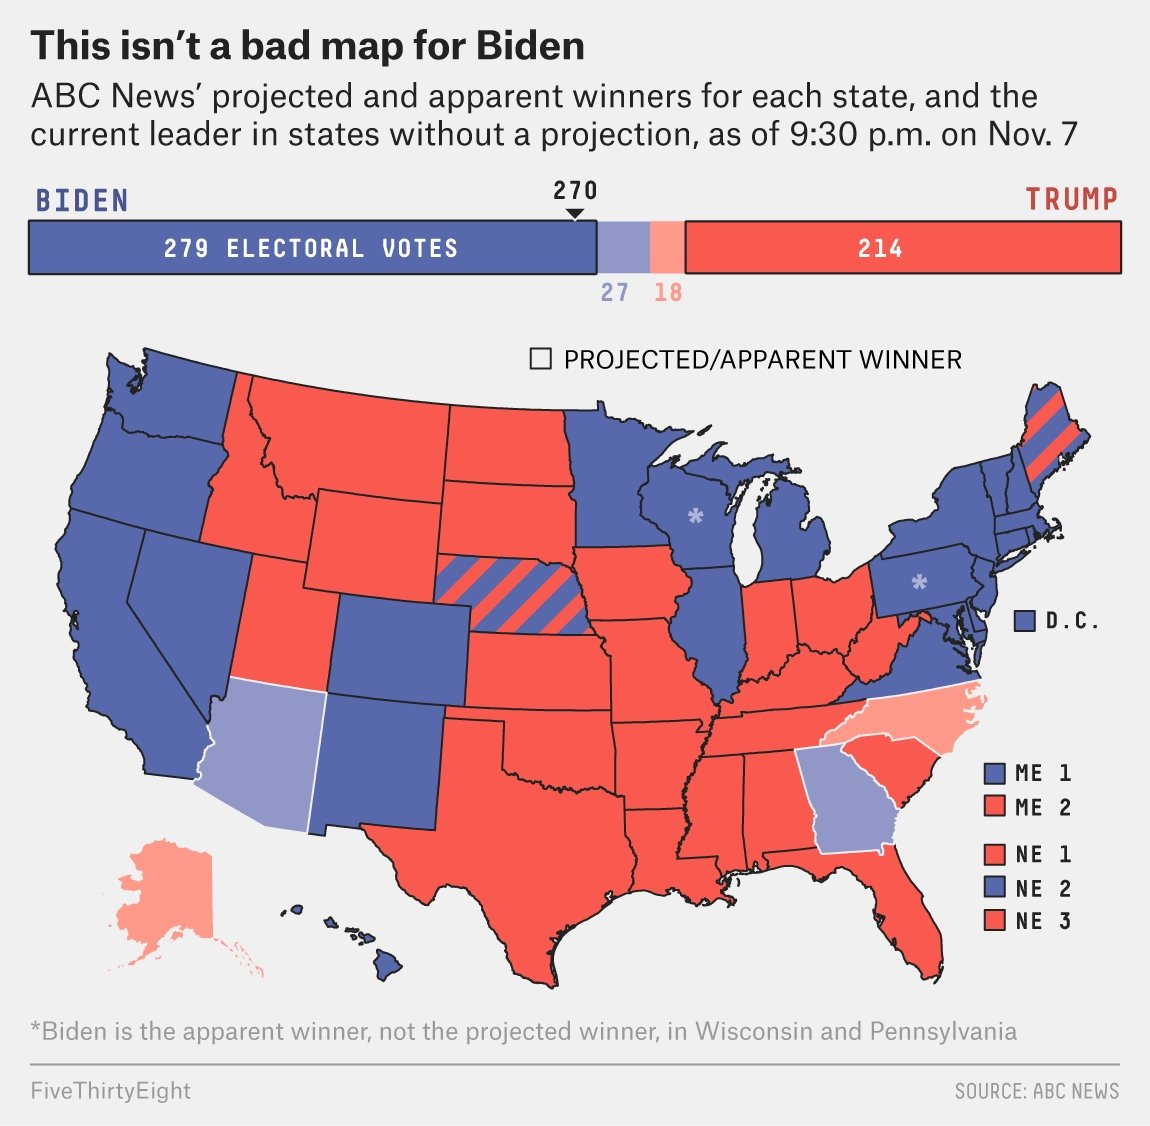 AND THAT'S A WRAP 😭😭😭 (beautiful map from @wiederkehra ) fivethirtyeight.com/live-blog/2020…